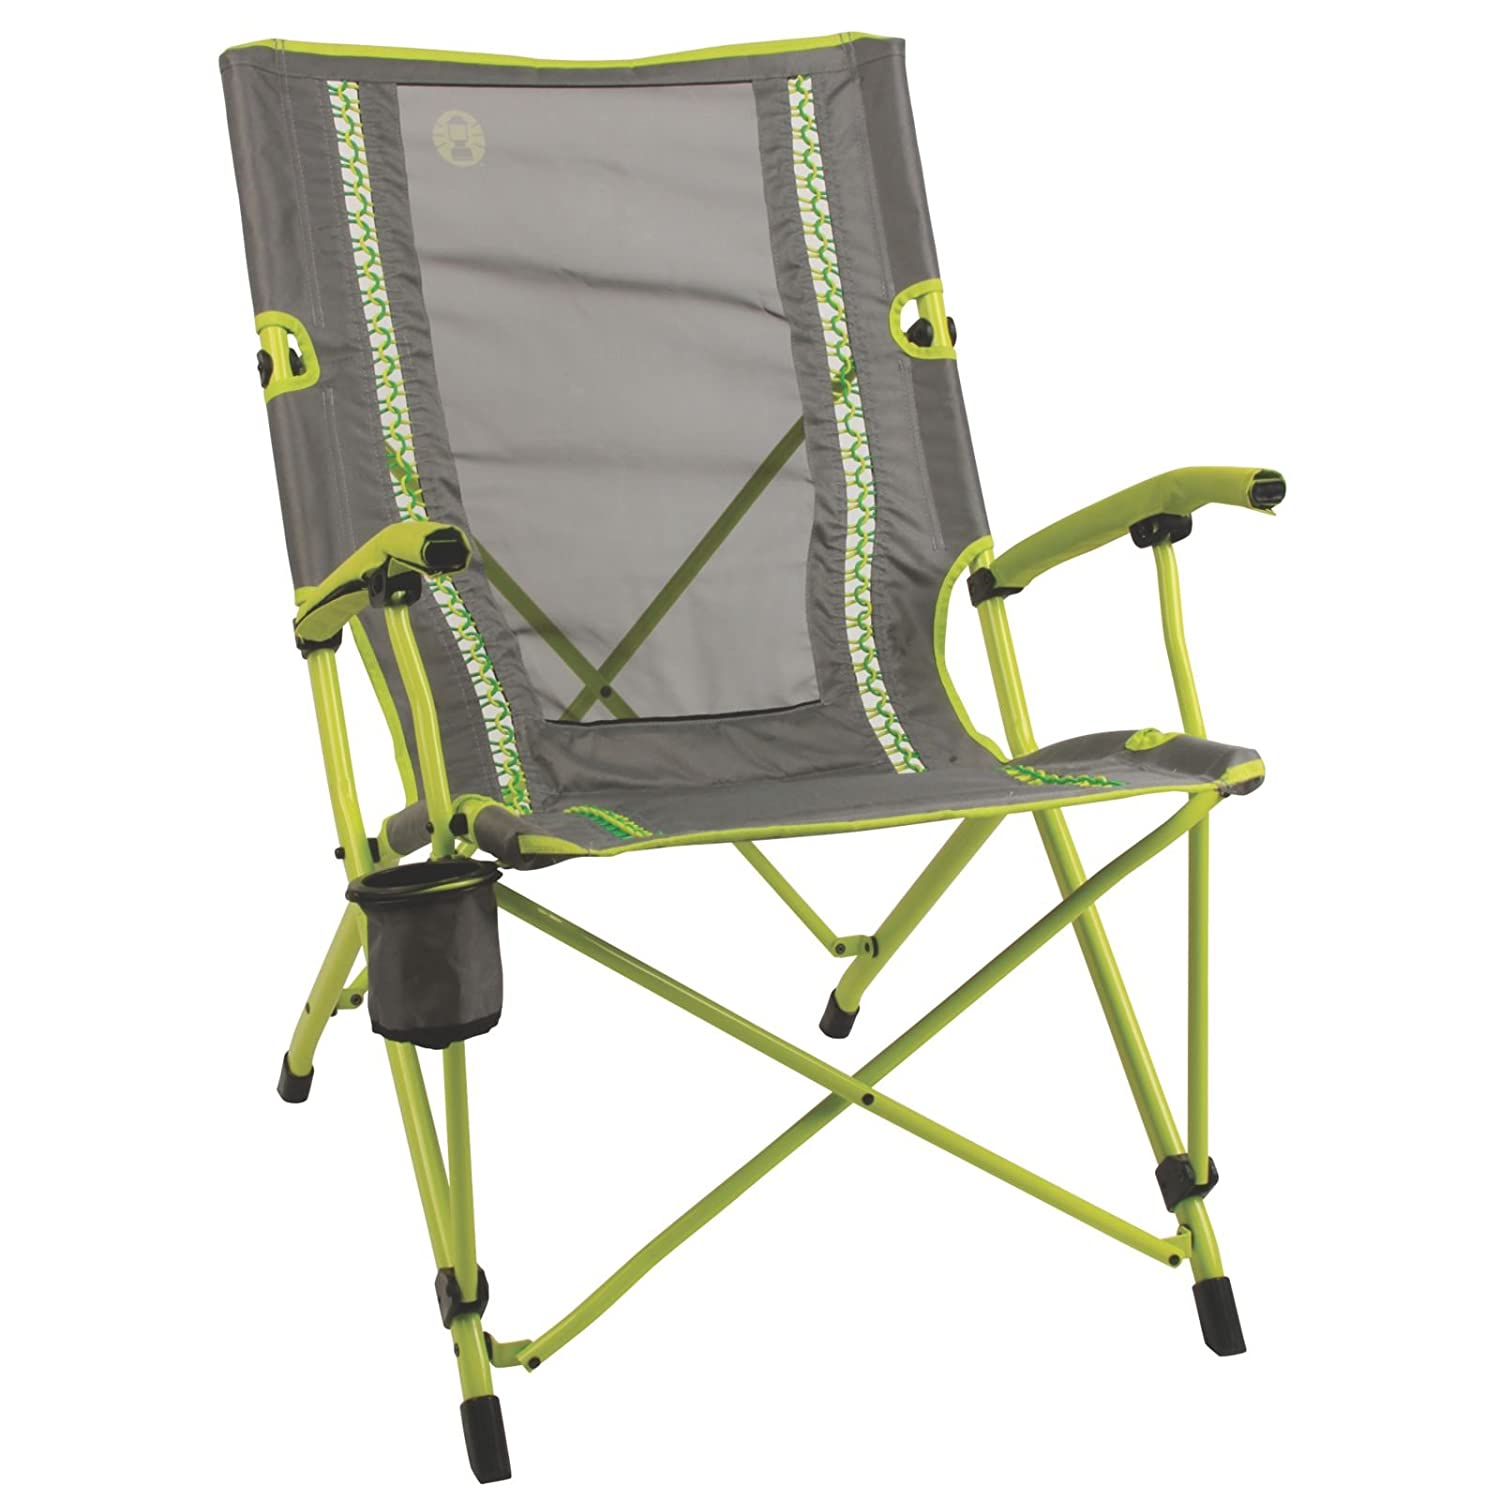 Coleman Comfort Smart Suspension Camping Chair